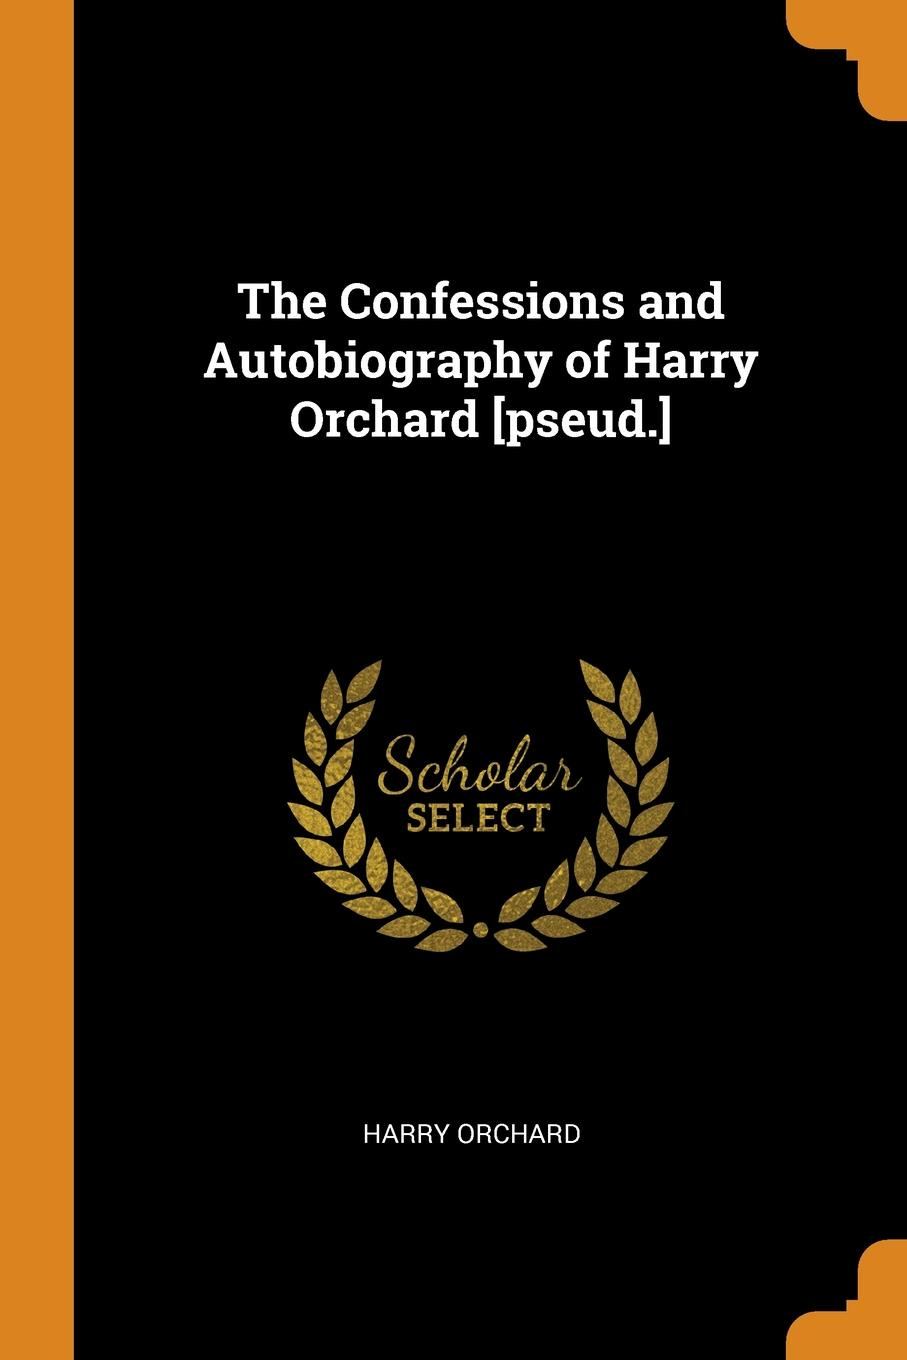 Harry Orchard The Confessions and Autobiography of Harry Orchard .pseud..